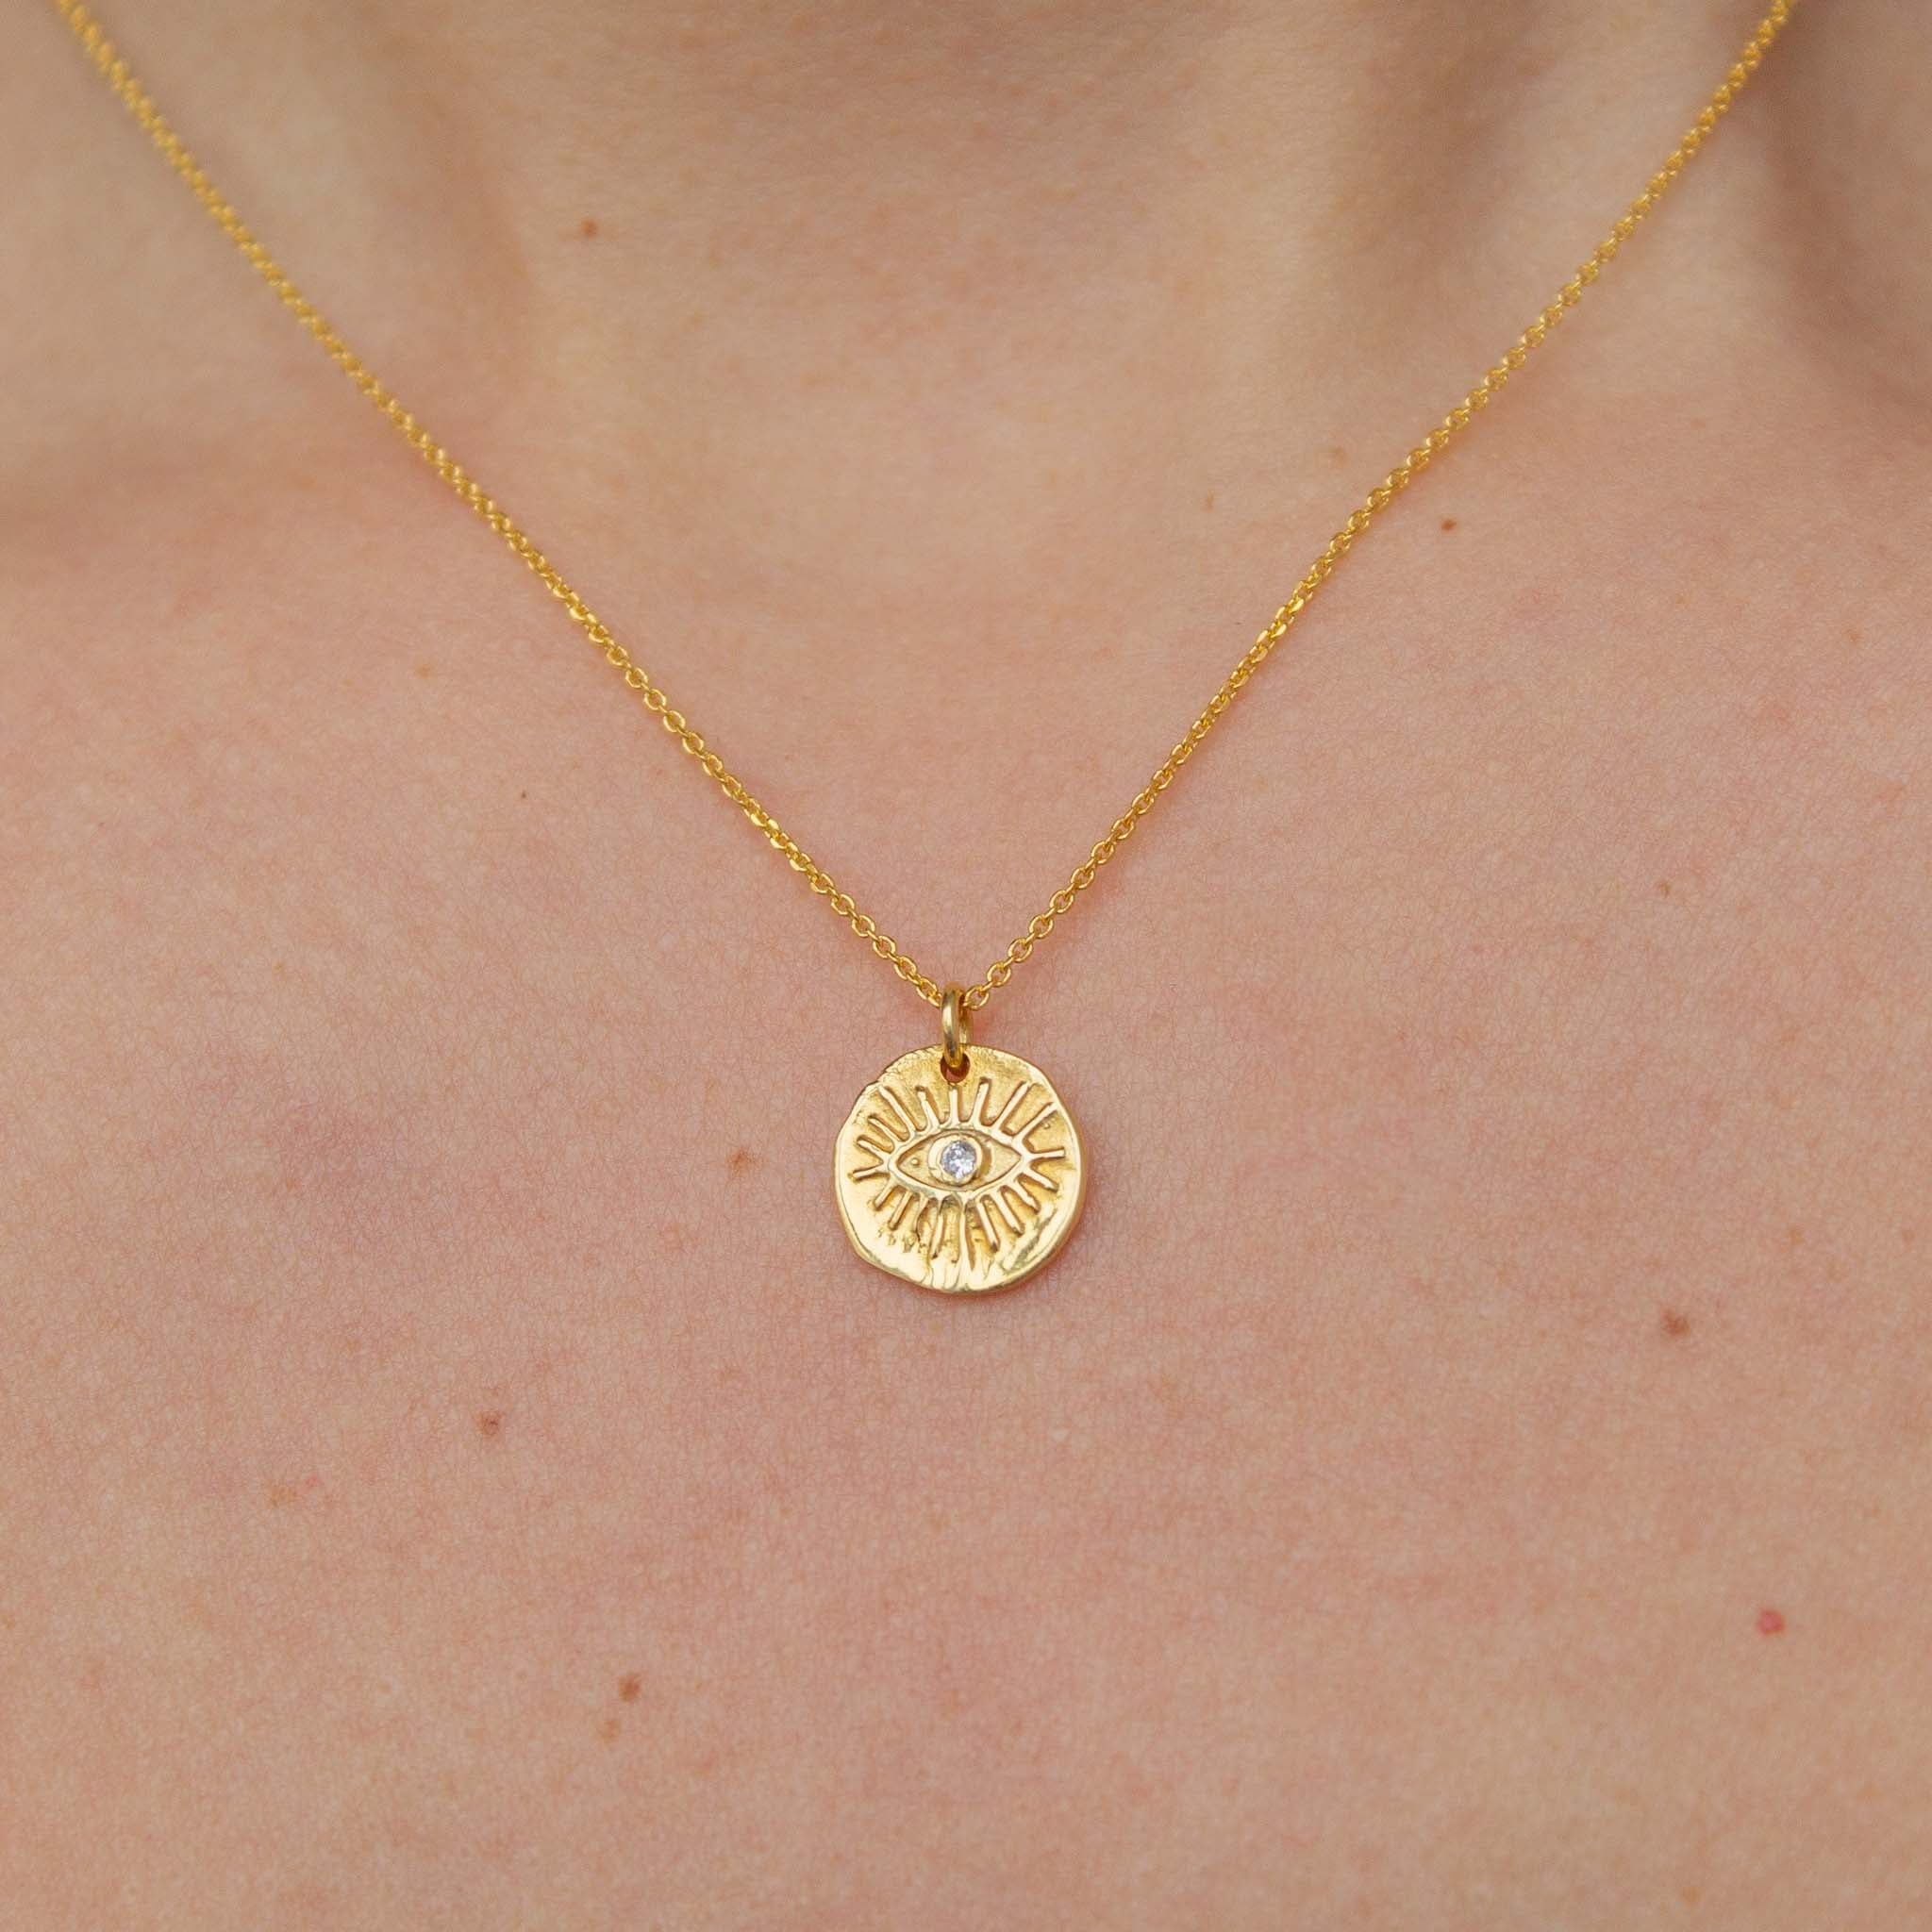 Rays Evil Eye Necklace in Solid Gold